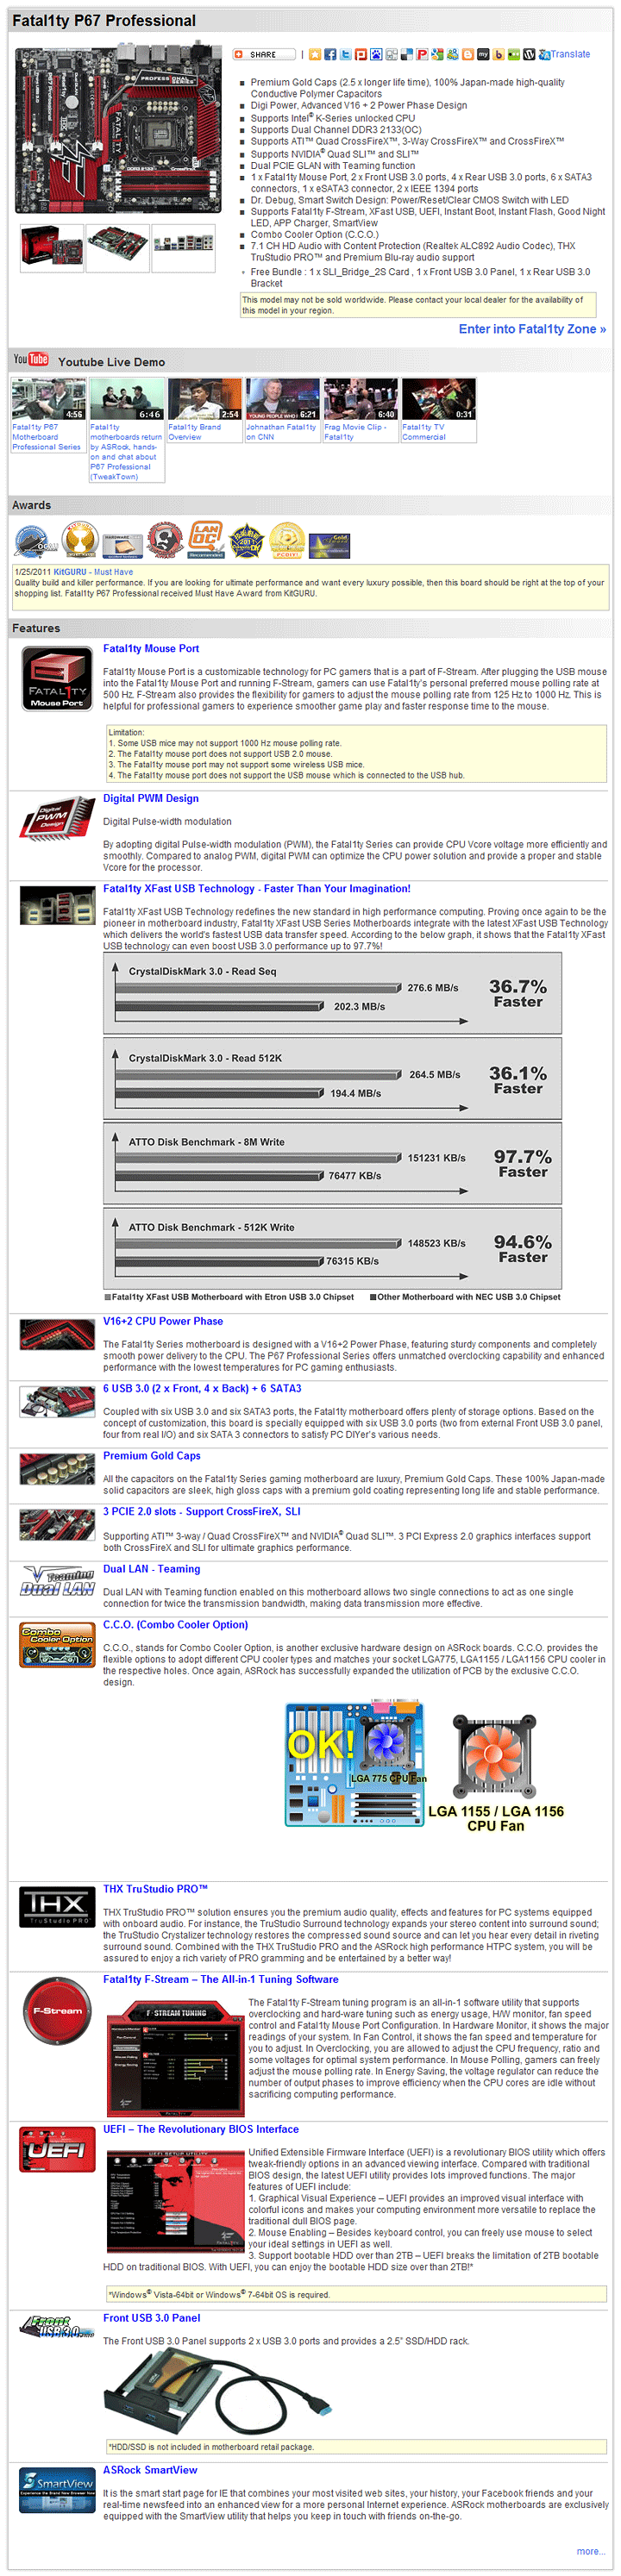 spec ASRock Fatal1ty P67 Professional Motherboard Review